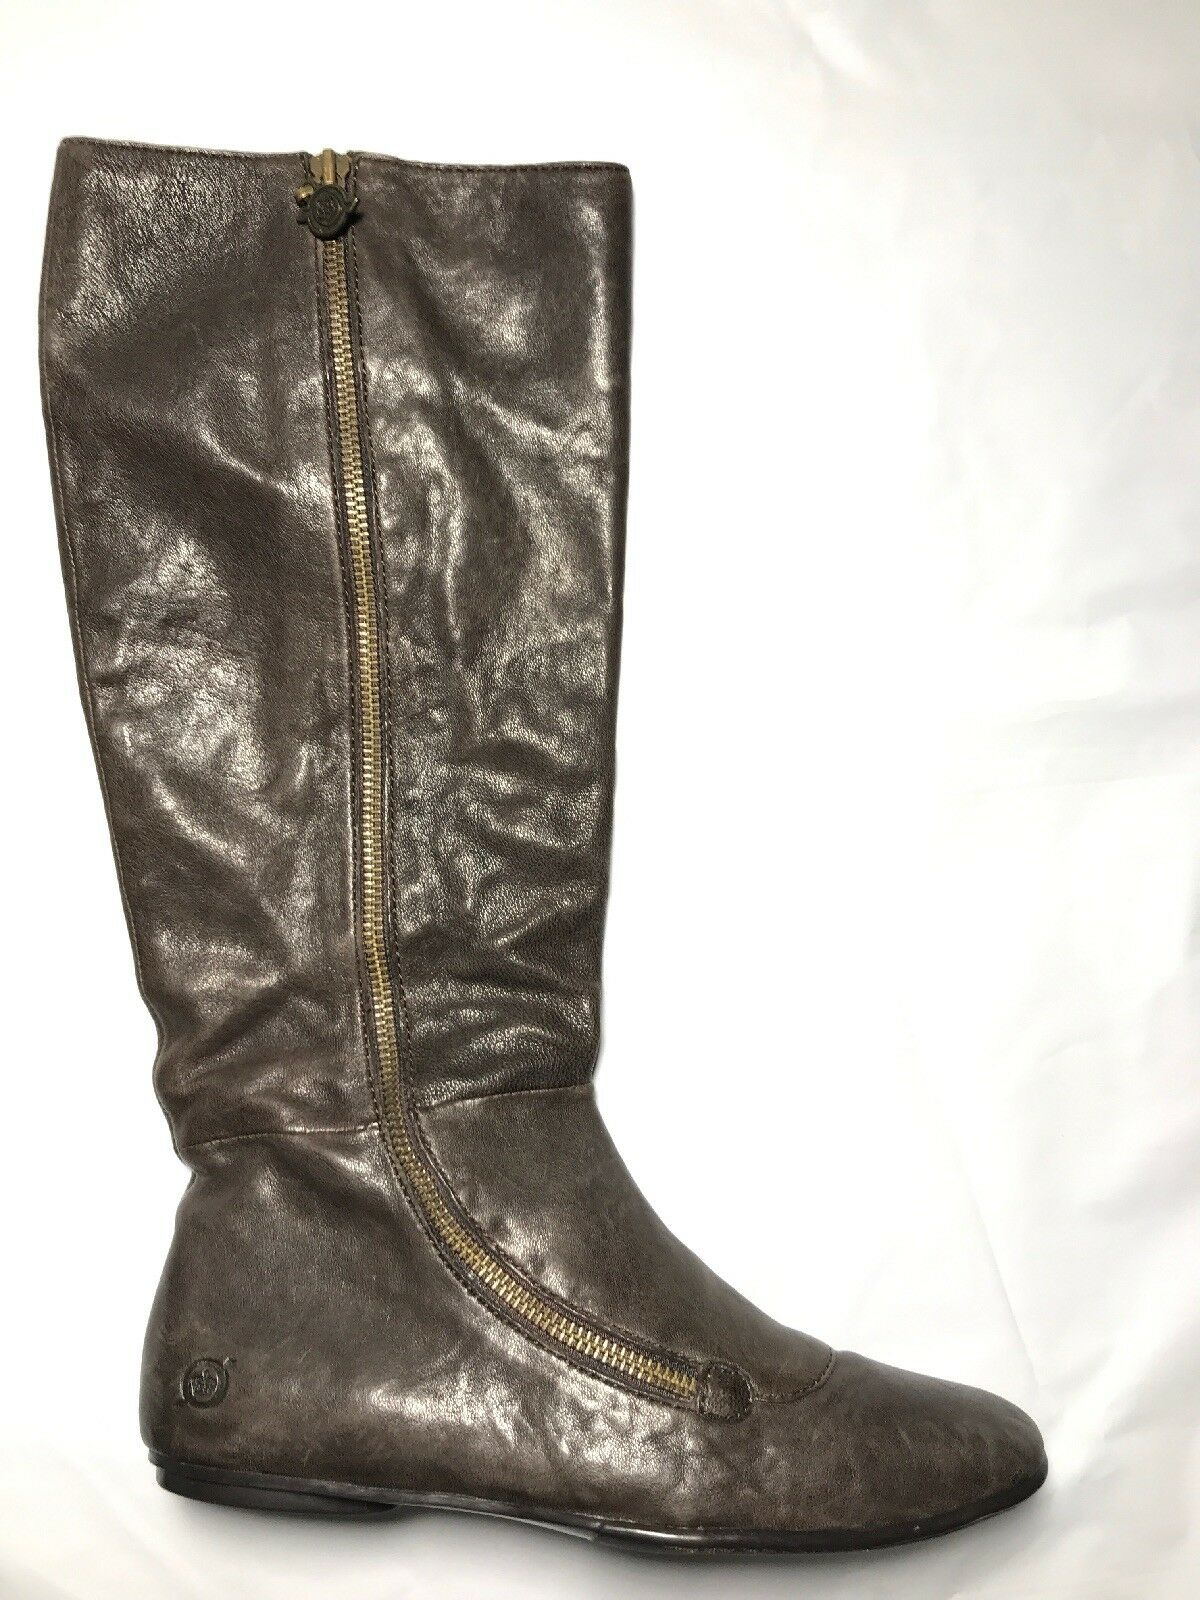 New Born Coffee Brown Leather Women's Knee High Flat Comfort Boots  size 6